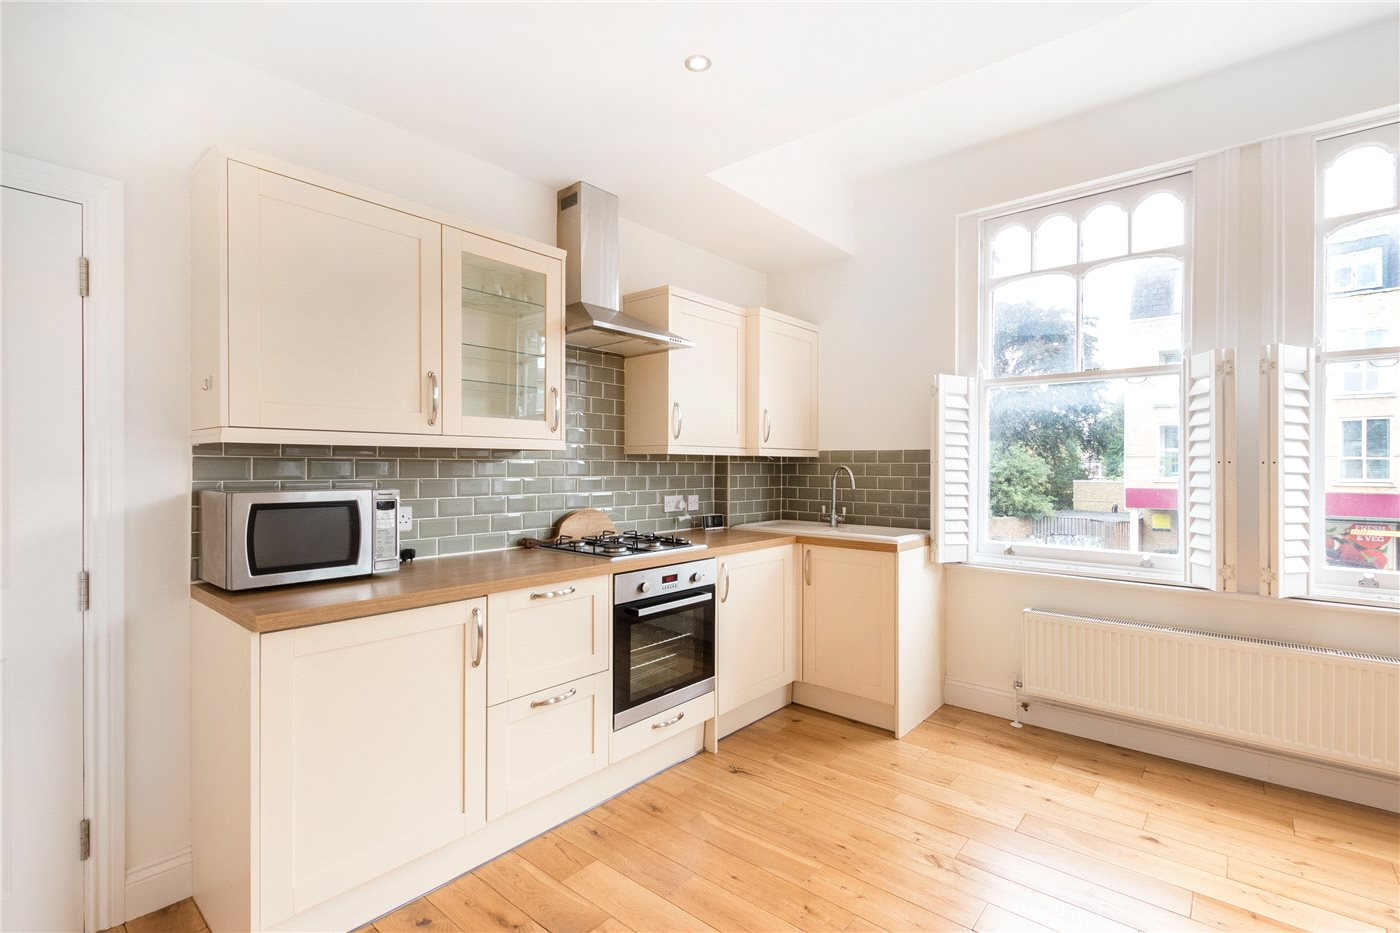 2 Bedrooms Maisonette Flat for sale in Tooting Bec Road, London, SW17